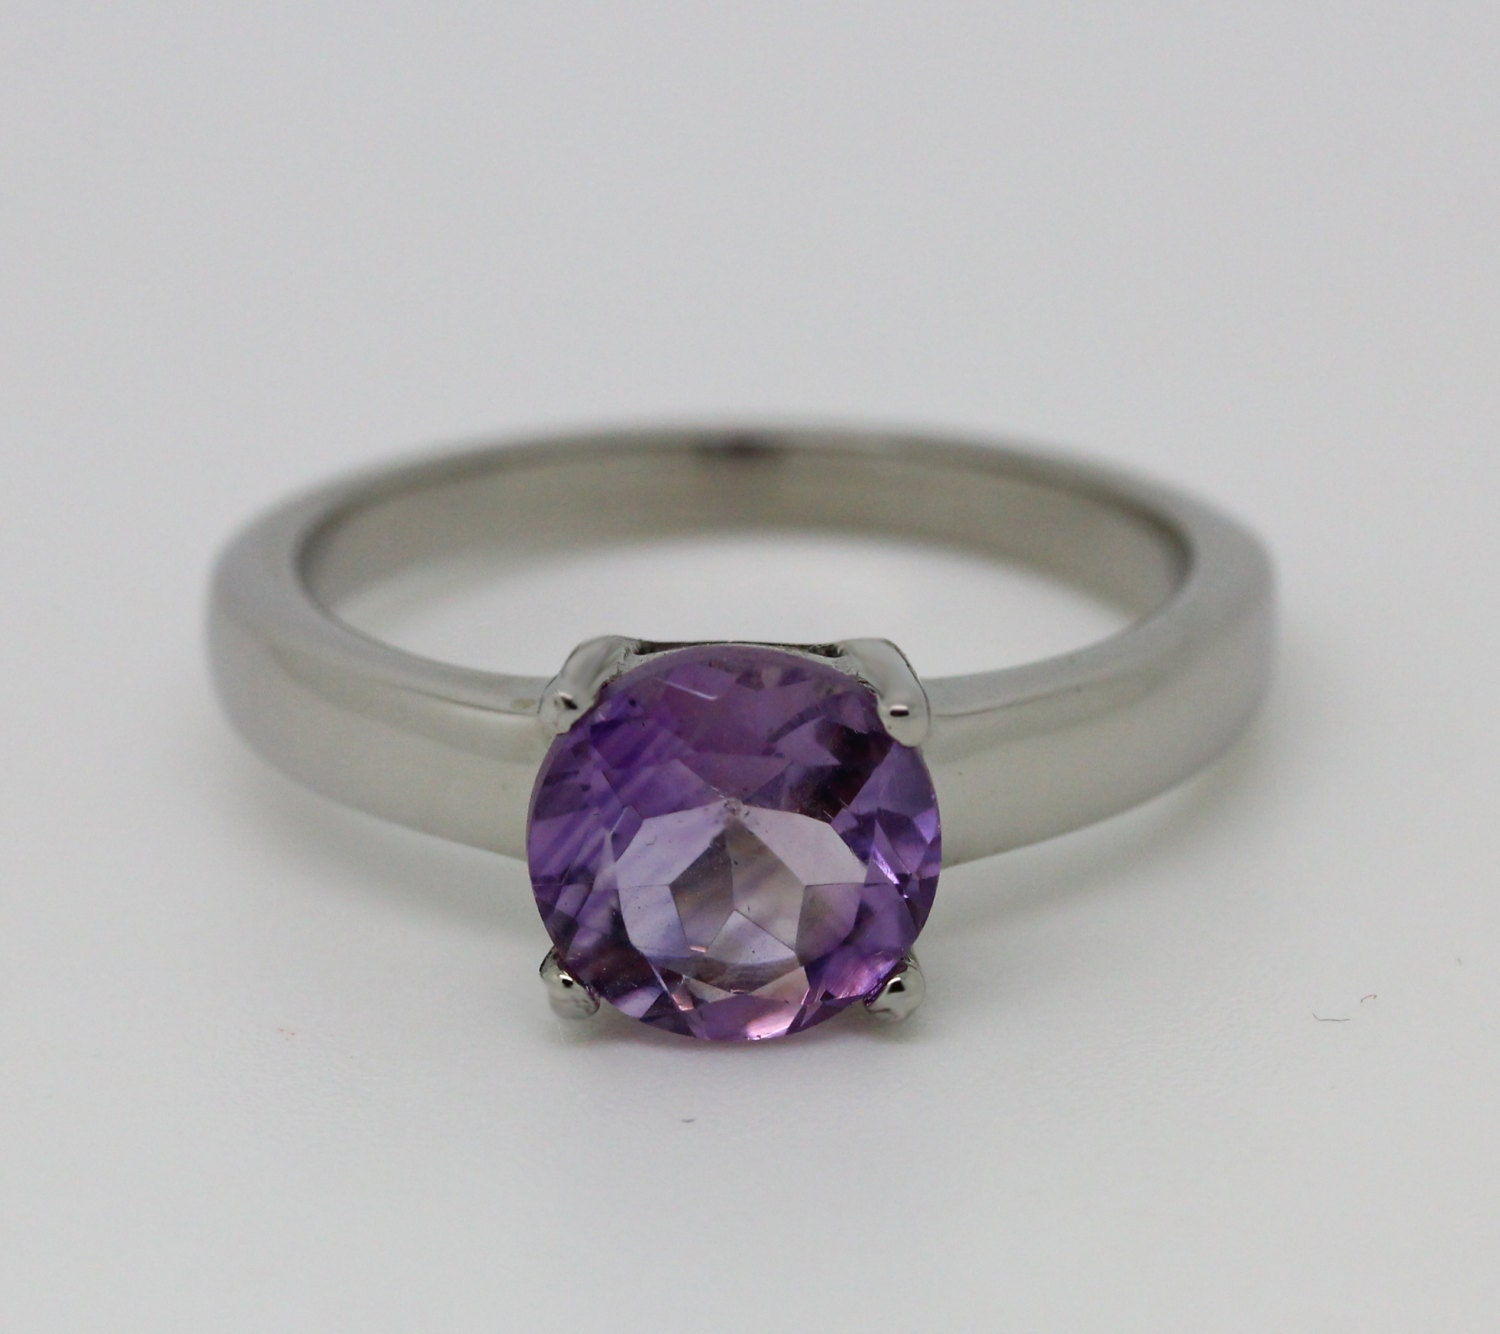 2ct Amethyst Solitaire ring in Titanium or White Gold  engagement ring  wedding ring  handmade ring